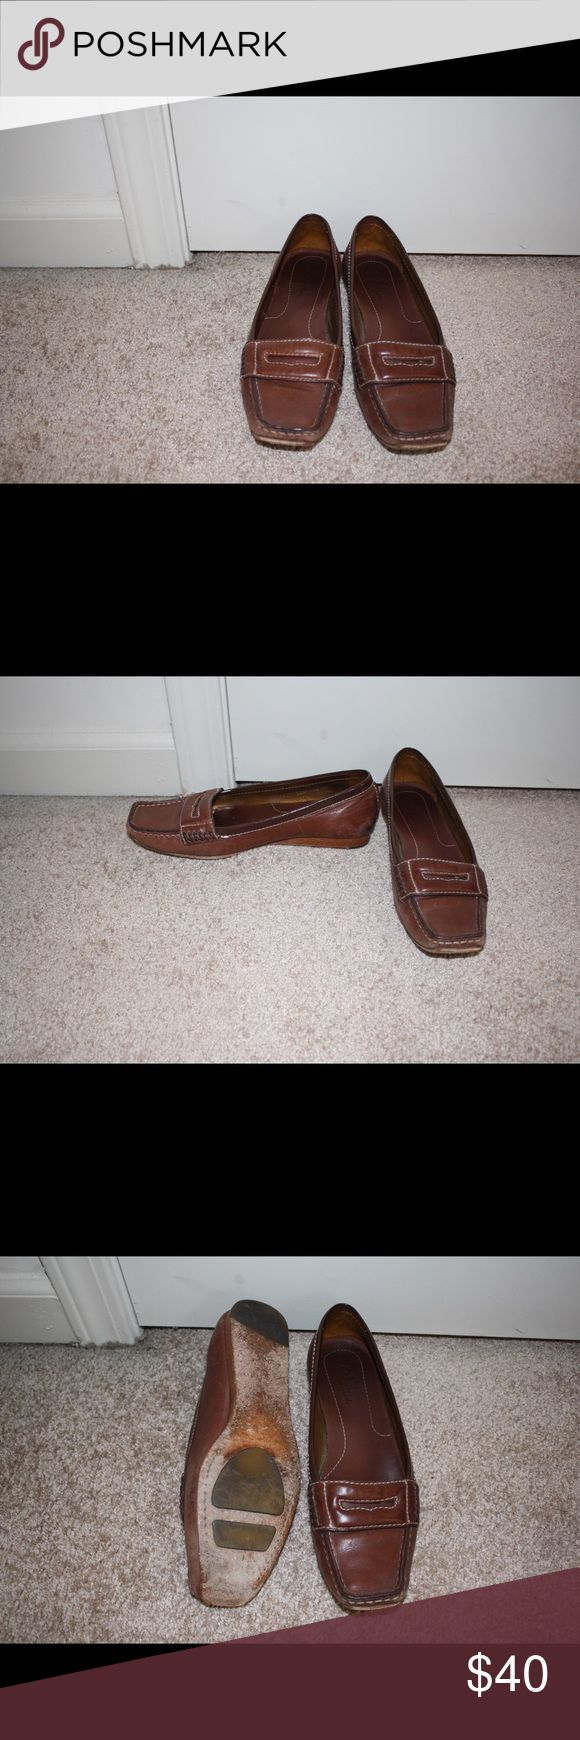 Cole Haan Loafers Slightly worn Cole Haan leather loafers! Size 8 Cole Haan Shoes Flats & Loafers